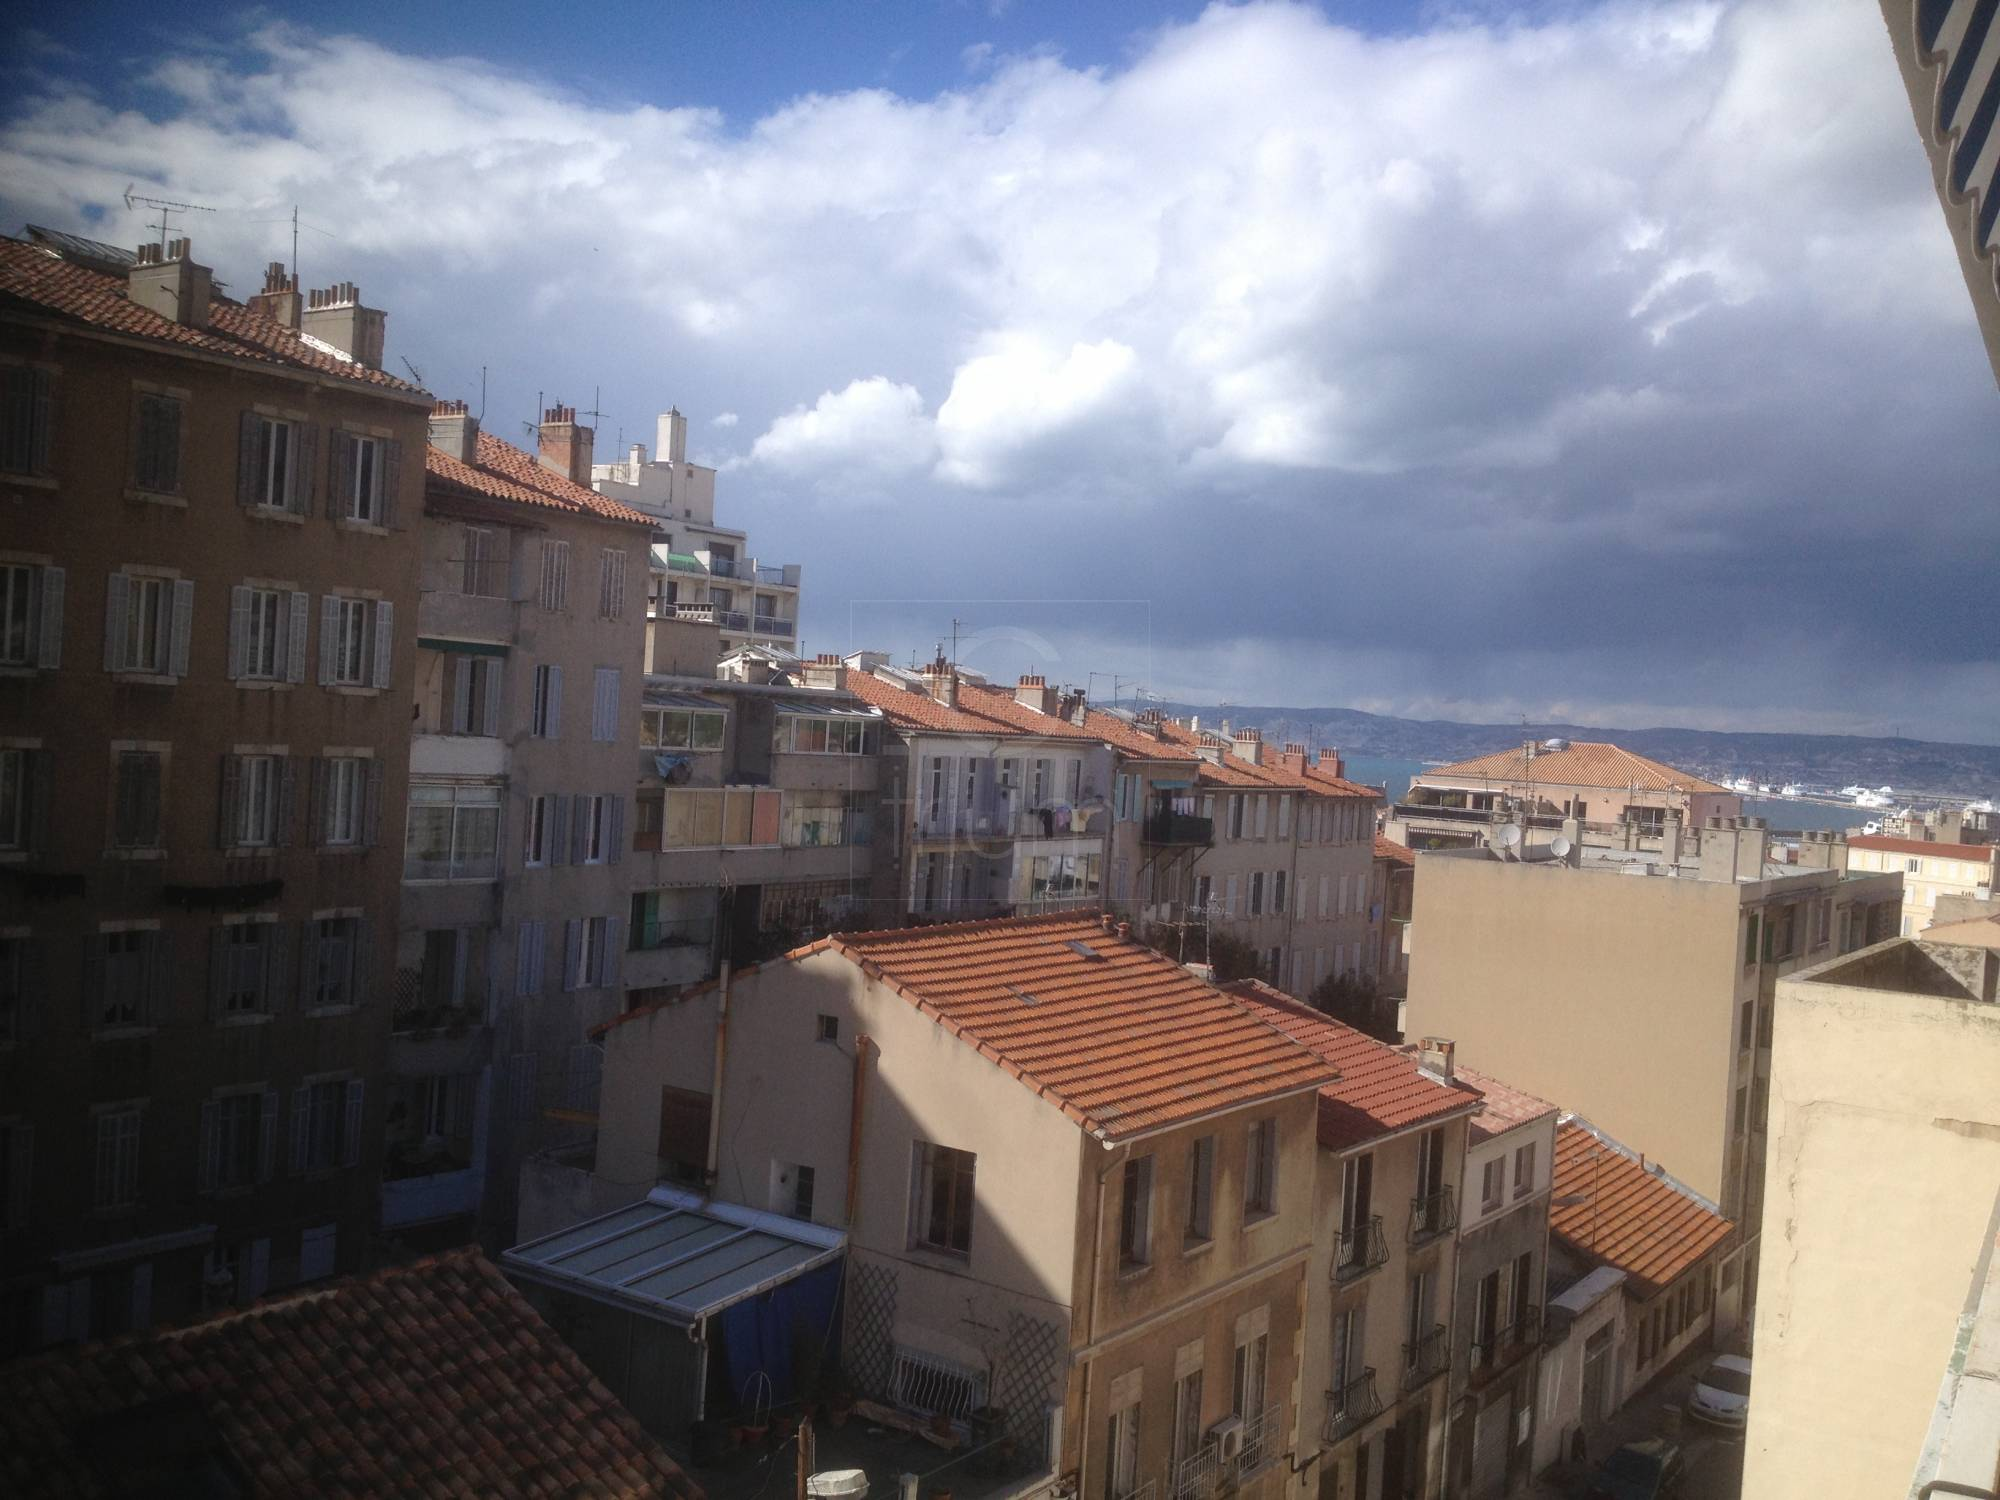 Vente appartement t3 4 f3 4 marseille 7eme endoume agence for T3 marseille vente